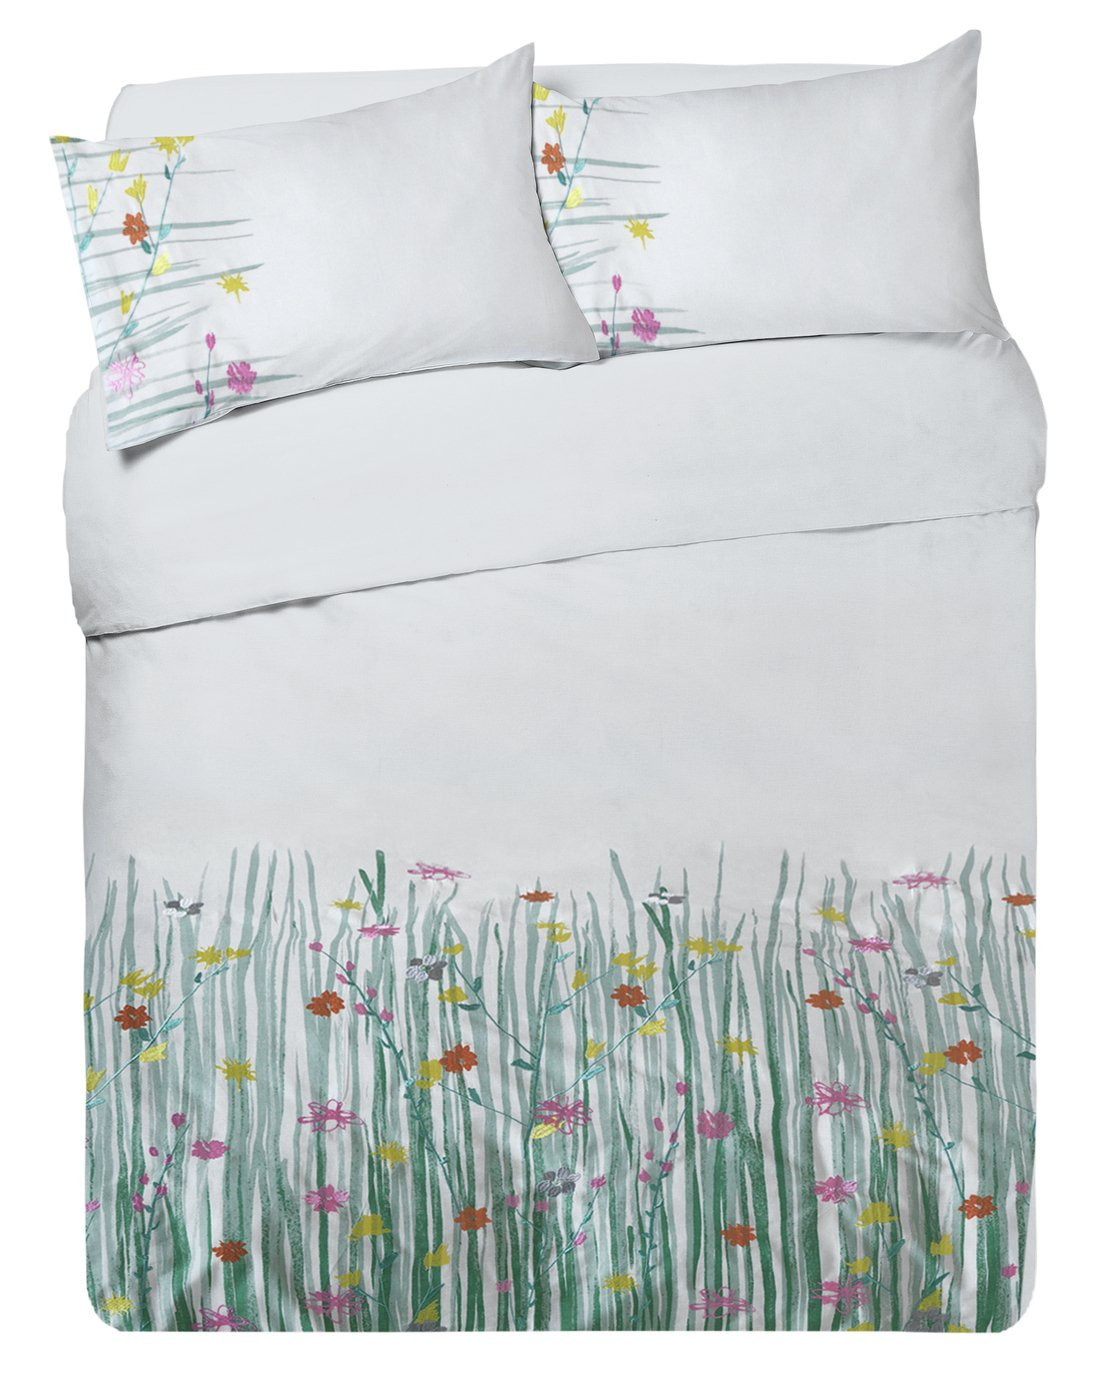 Argos Home Summer Meadow Bedding Set - Kingsize